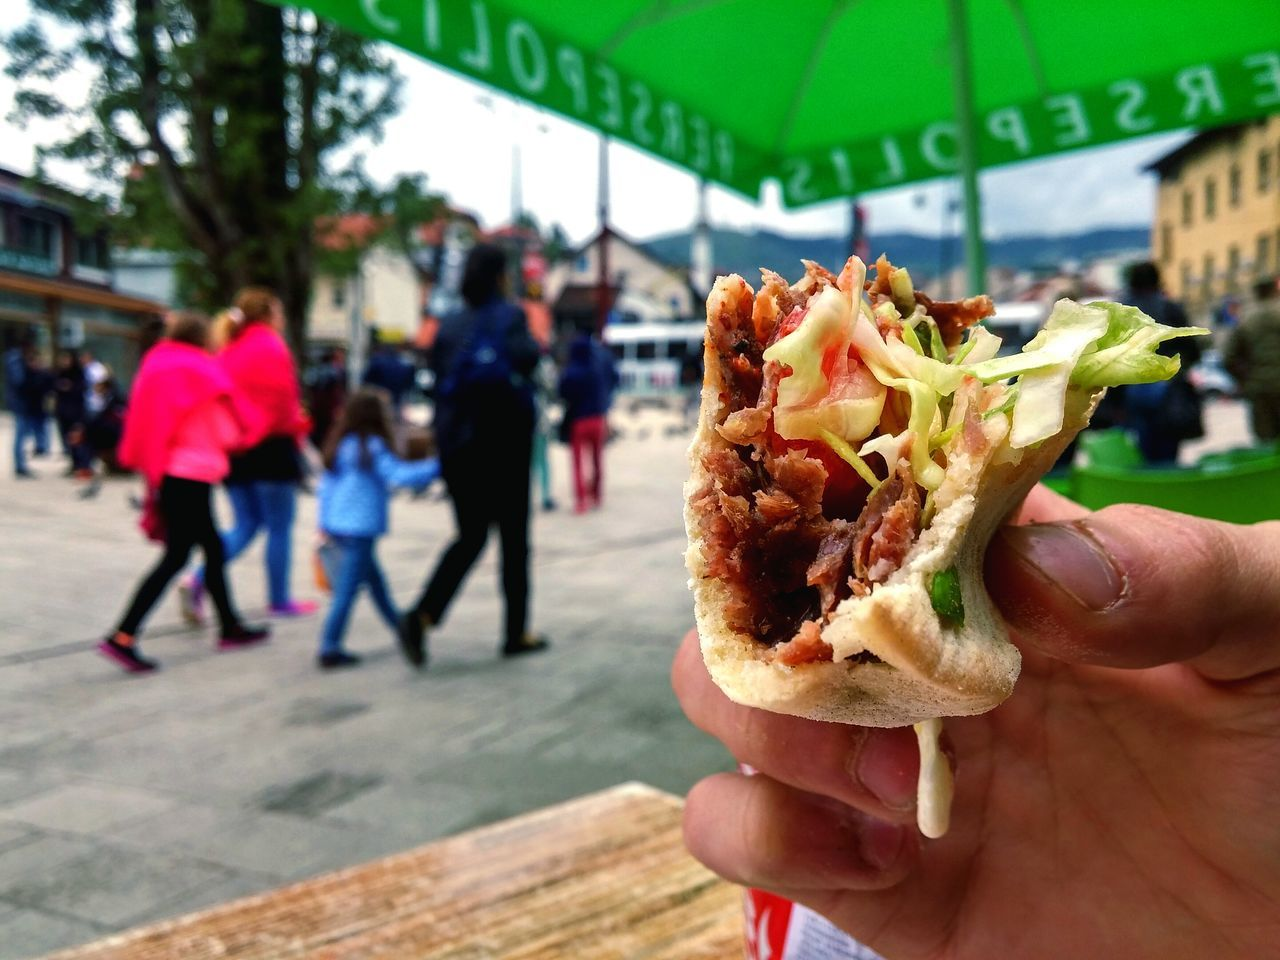 Street Food Worldwide Sarajevo Bascarsija Doner Kebab Friend Dripping Sauce Mouthwatering People City Photography Focus Art Food Meat Salad Final Bite Bite One Bite